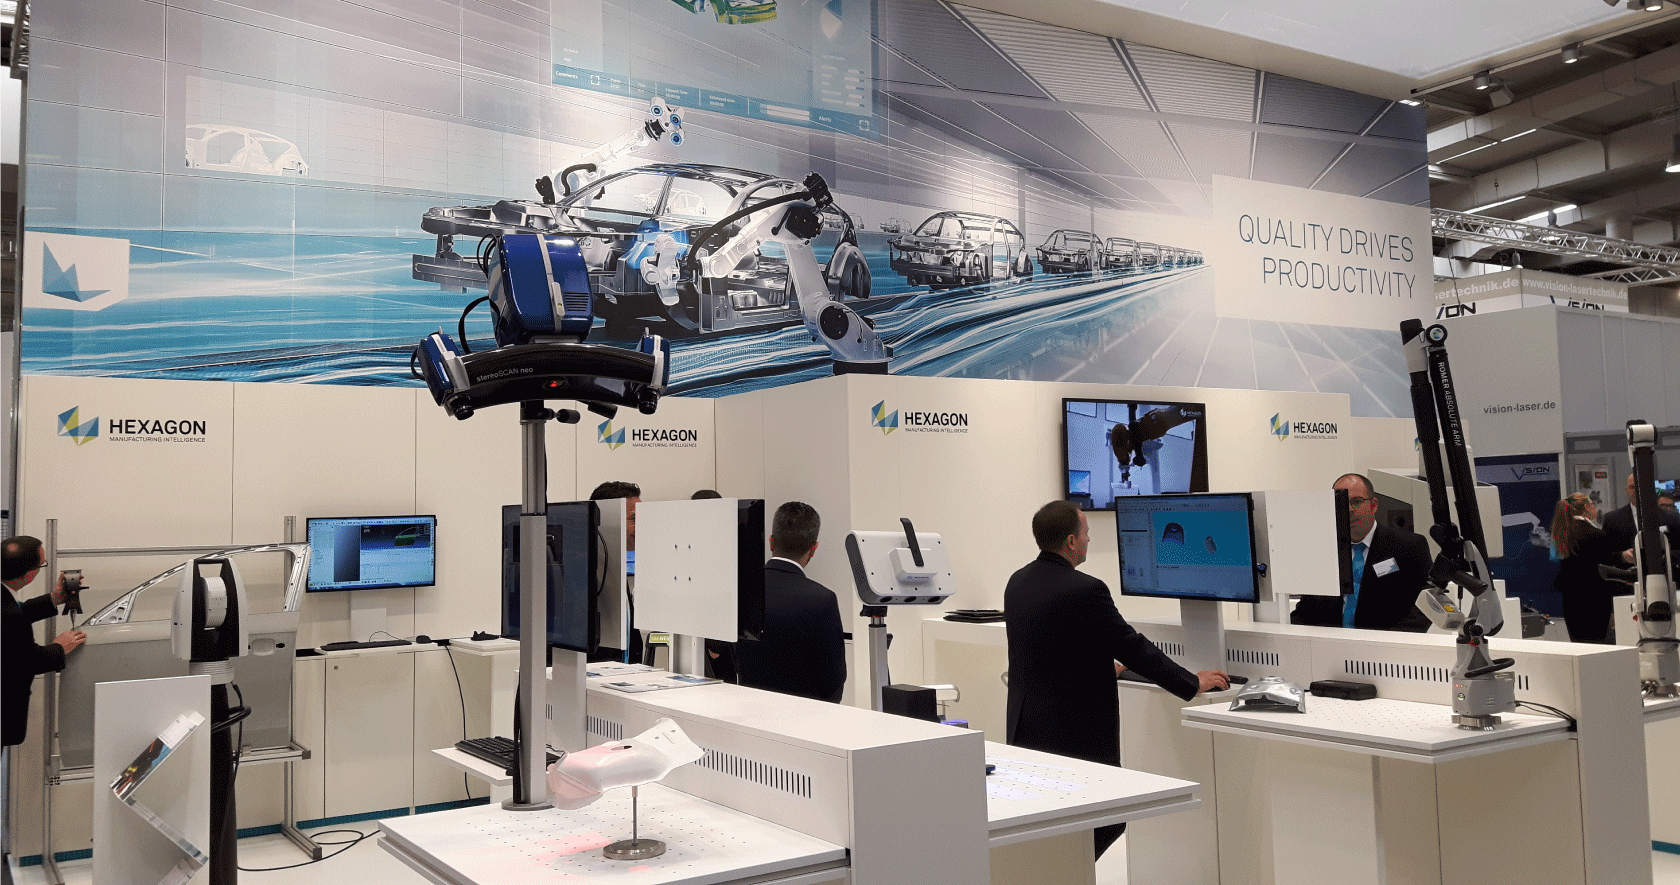 Hexagon at Hannover Messe 2017